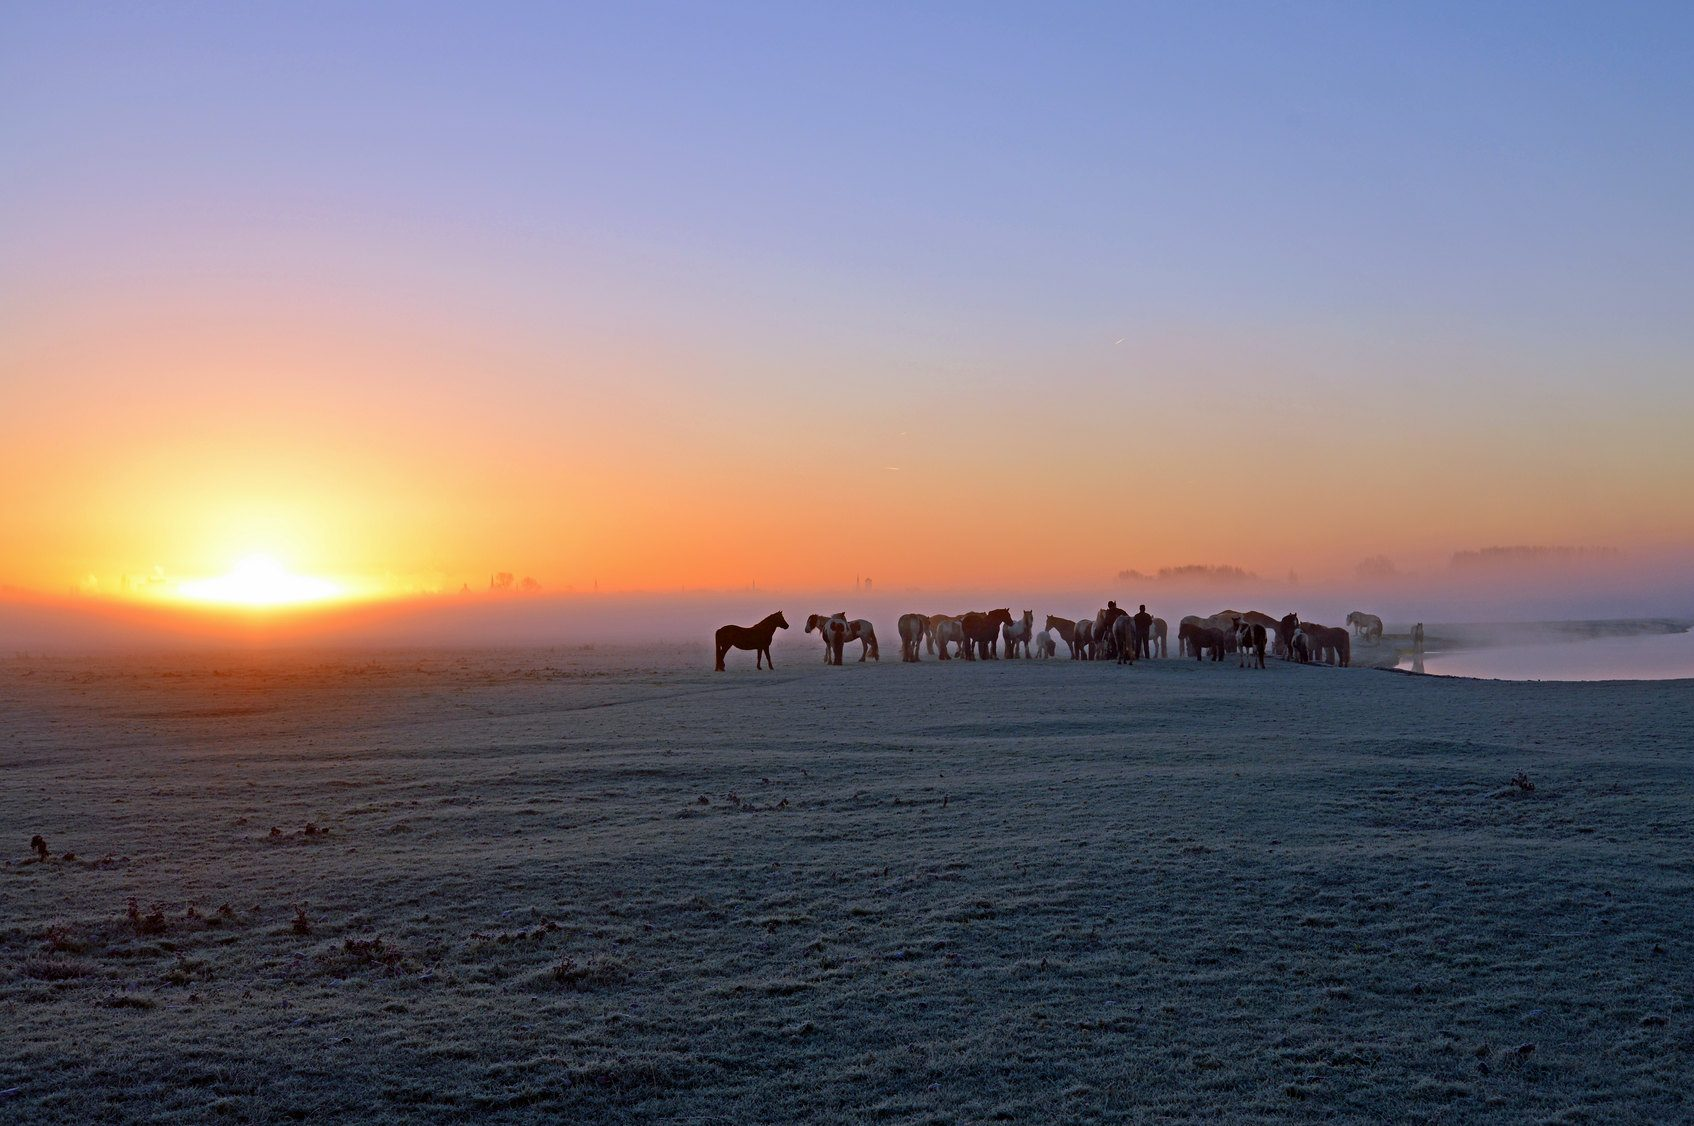 Sunrise over a wintry plain featuring a pack of horses